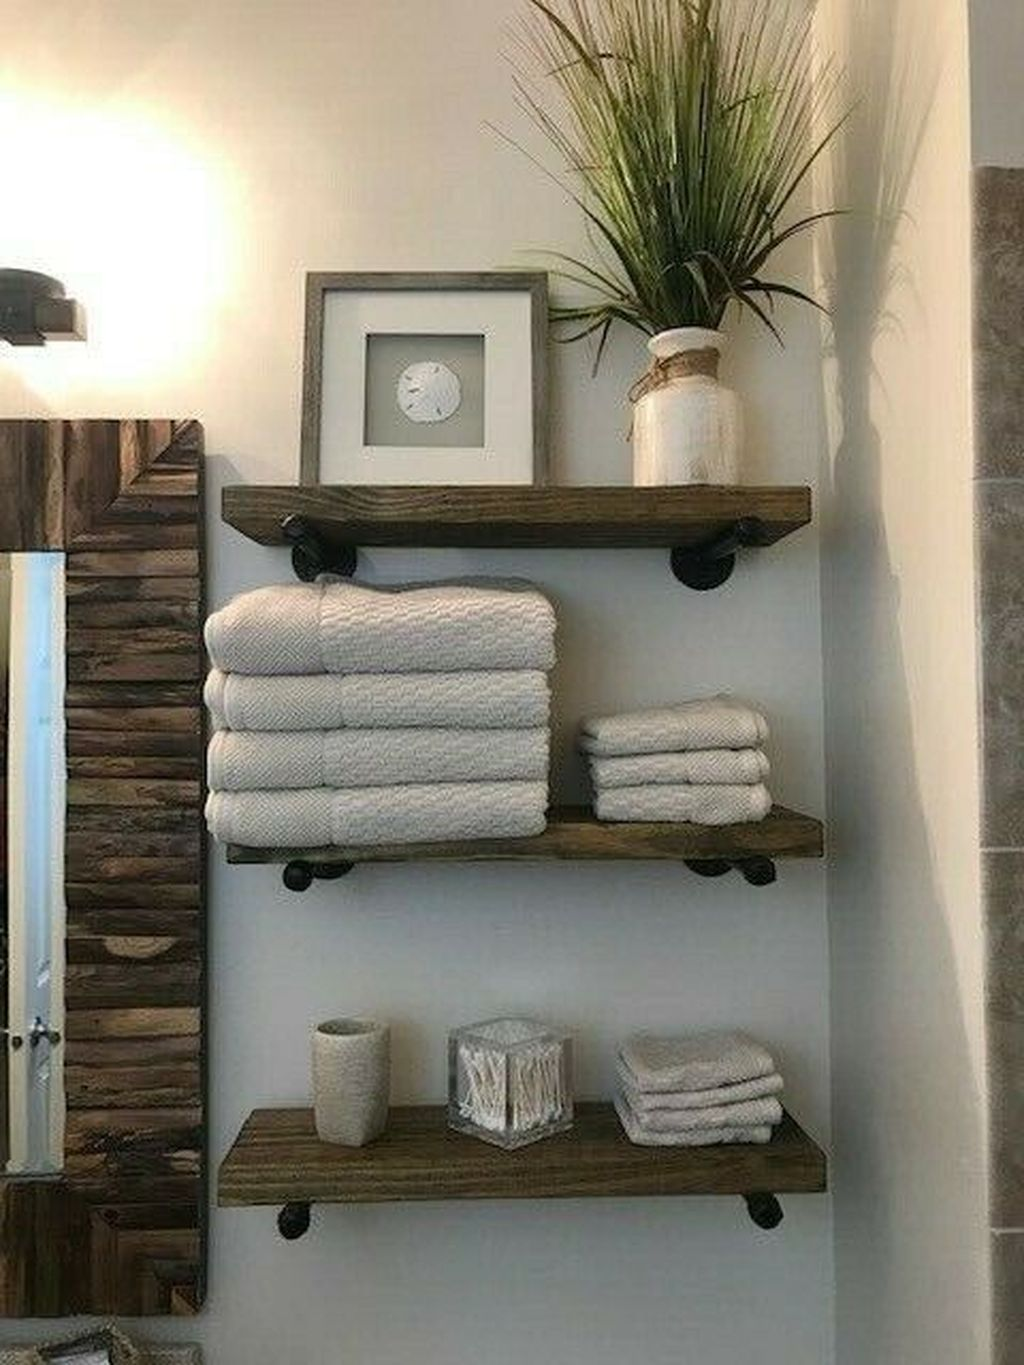 Amazing Bathroom Storage Design Ideas For Small Space 09